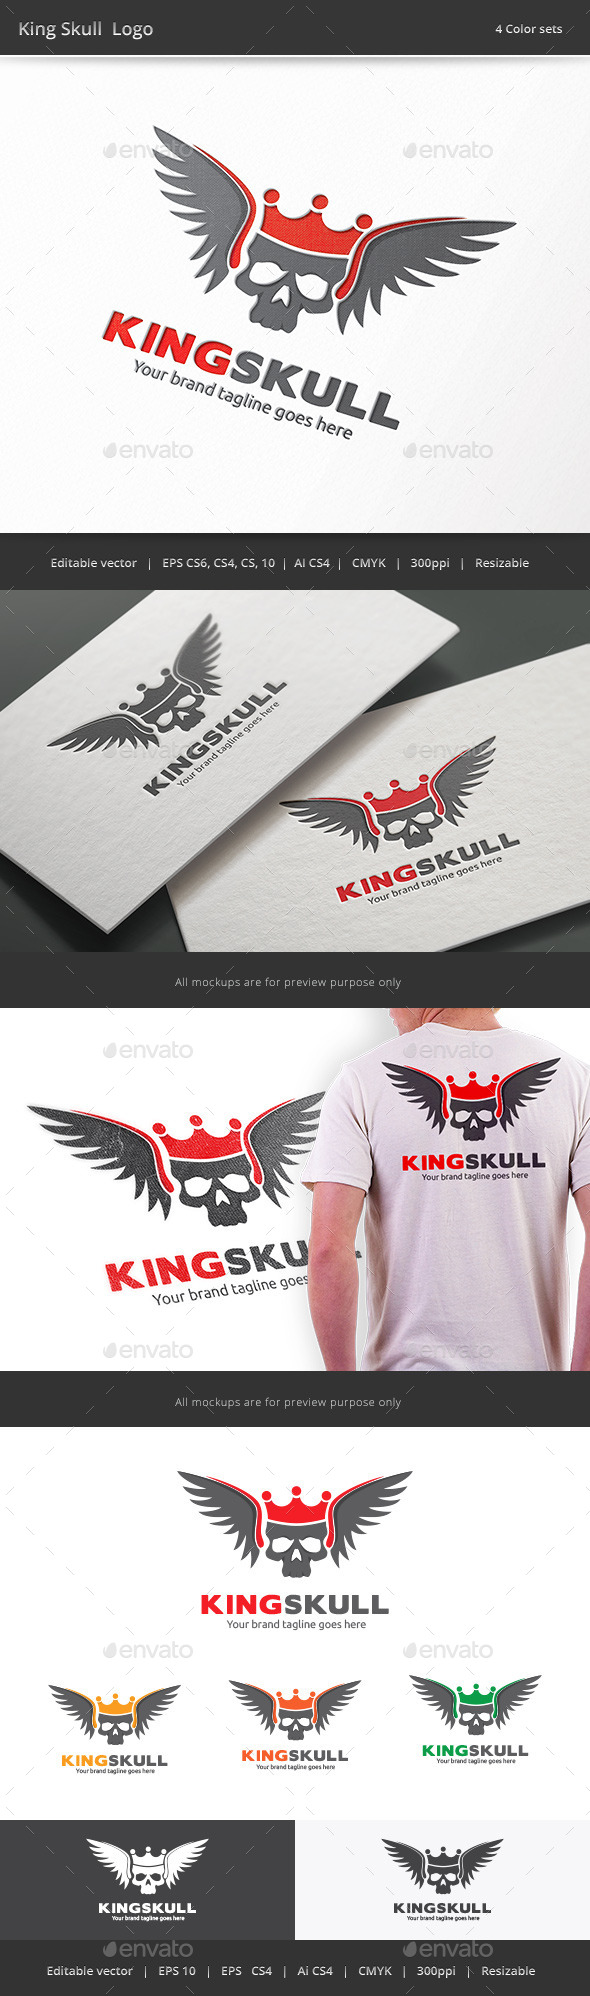 GraphicRiver King Skull Logo 9533896